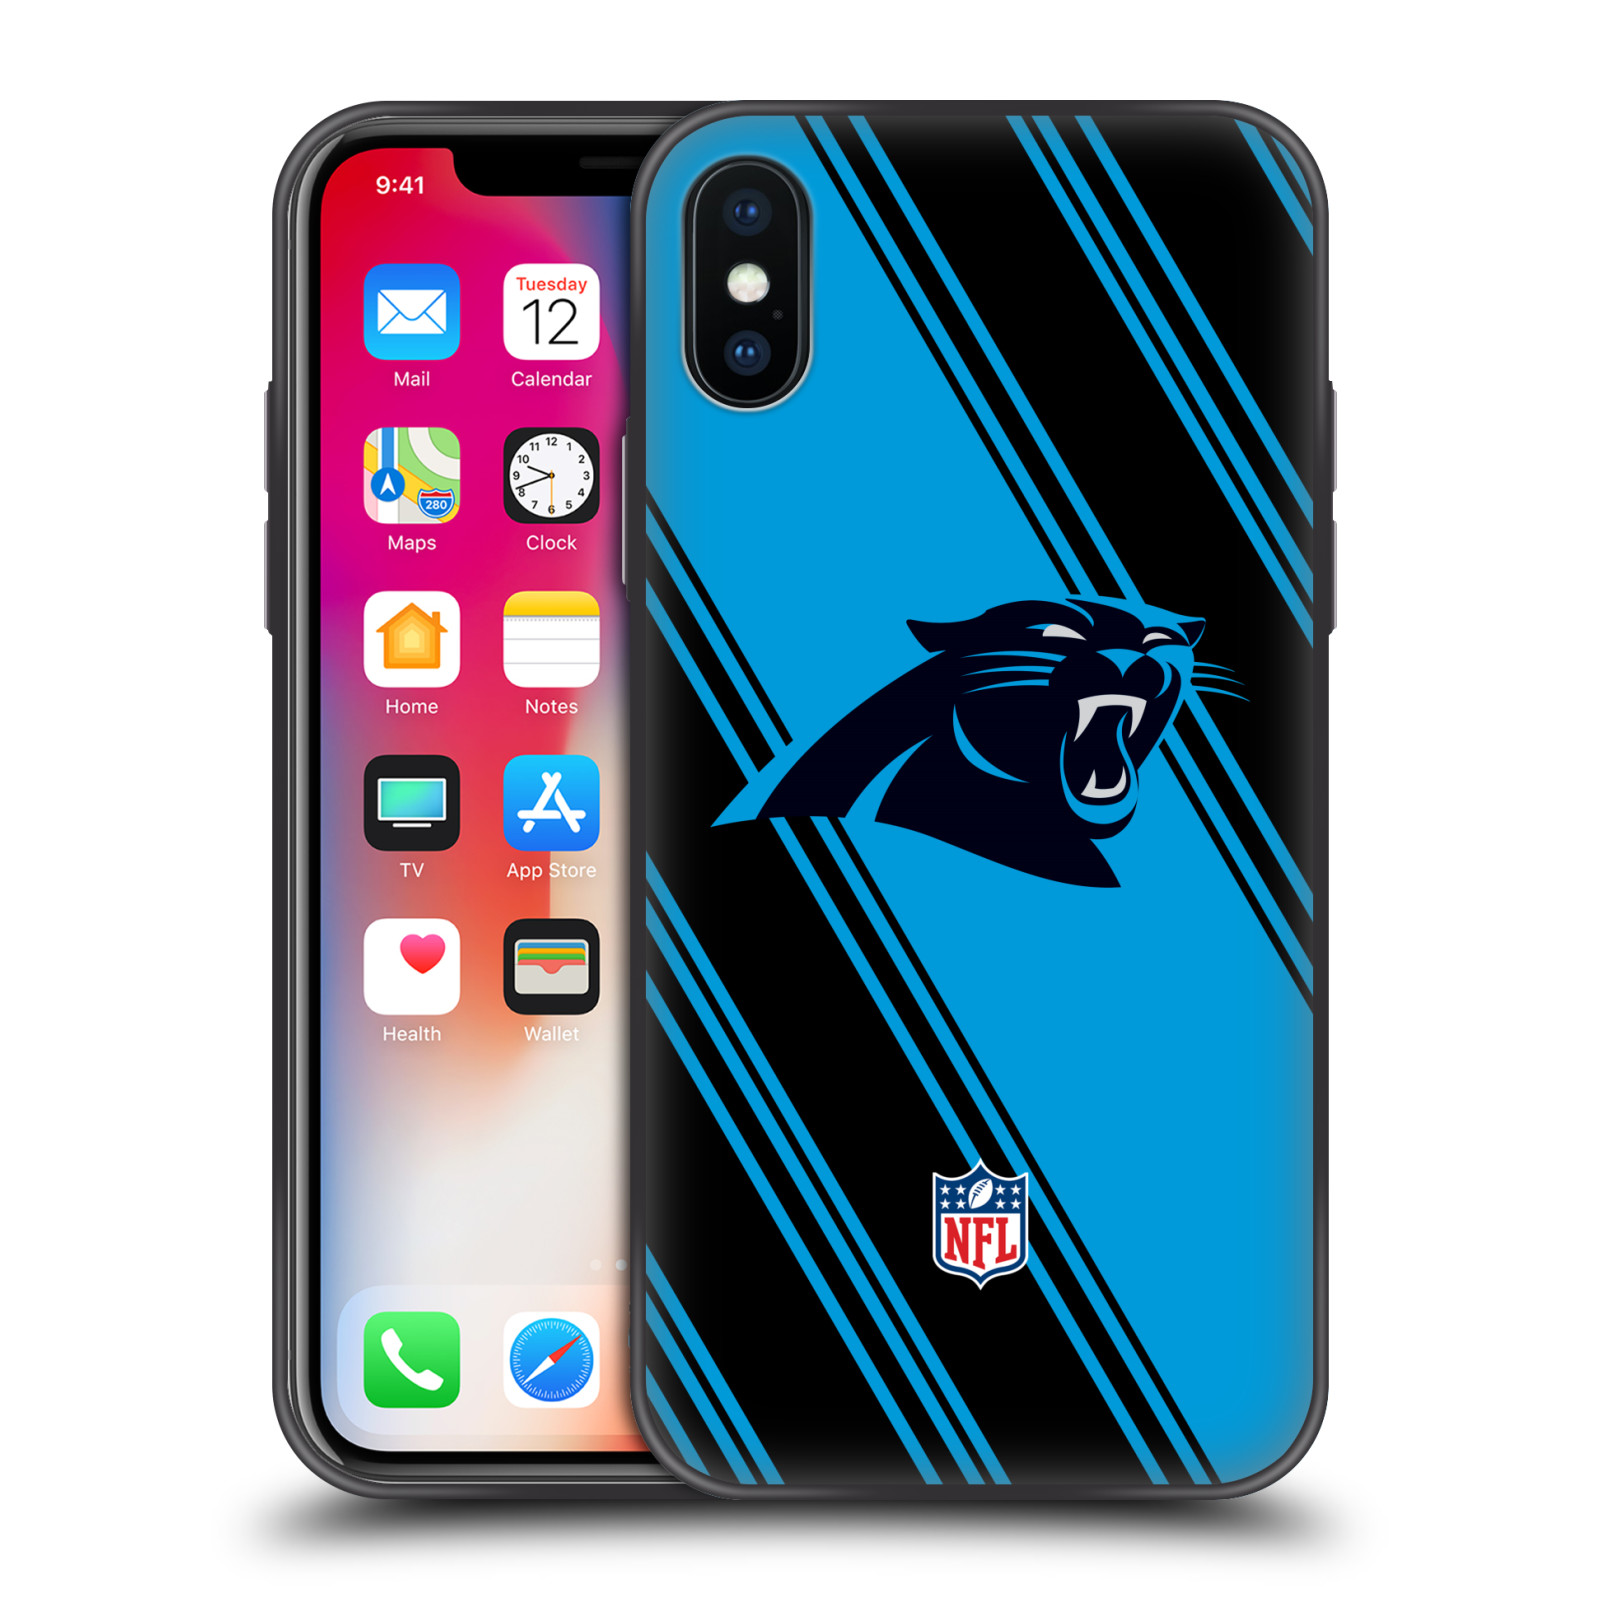 NFL-2017-18-CAROLINA-PANTHERS-HYBRID-CLEAR-CASE-FOR-iPHONE-HUAWEI-SAMSUNG-PHONES